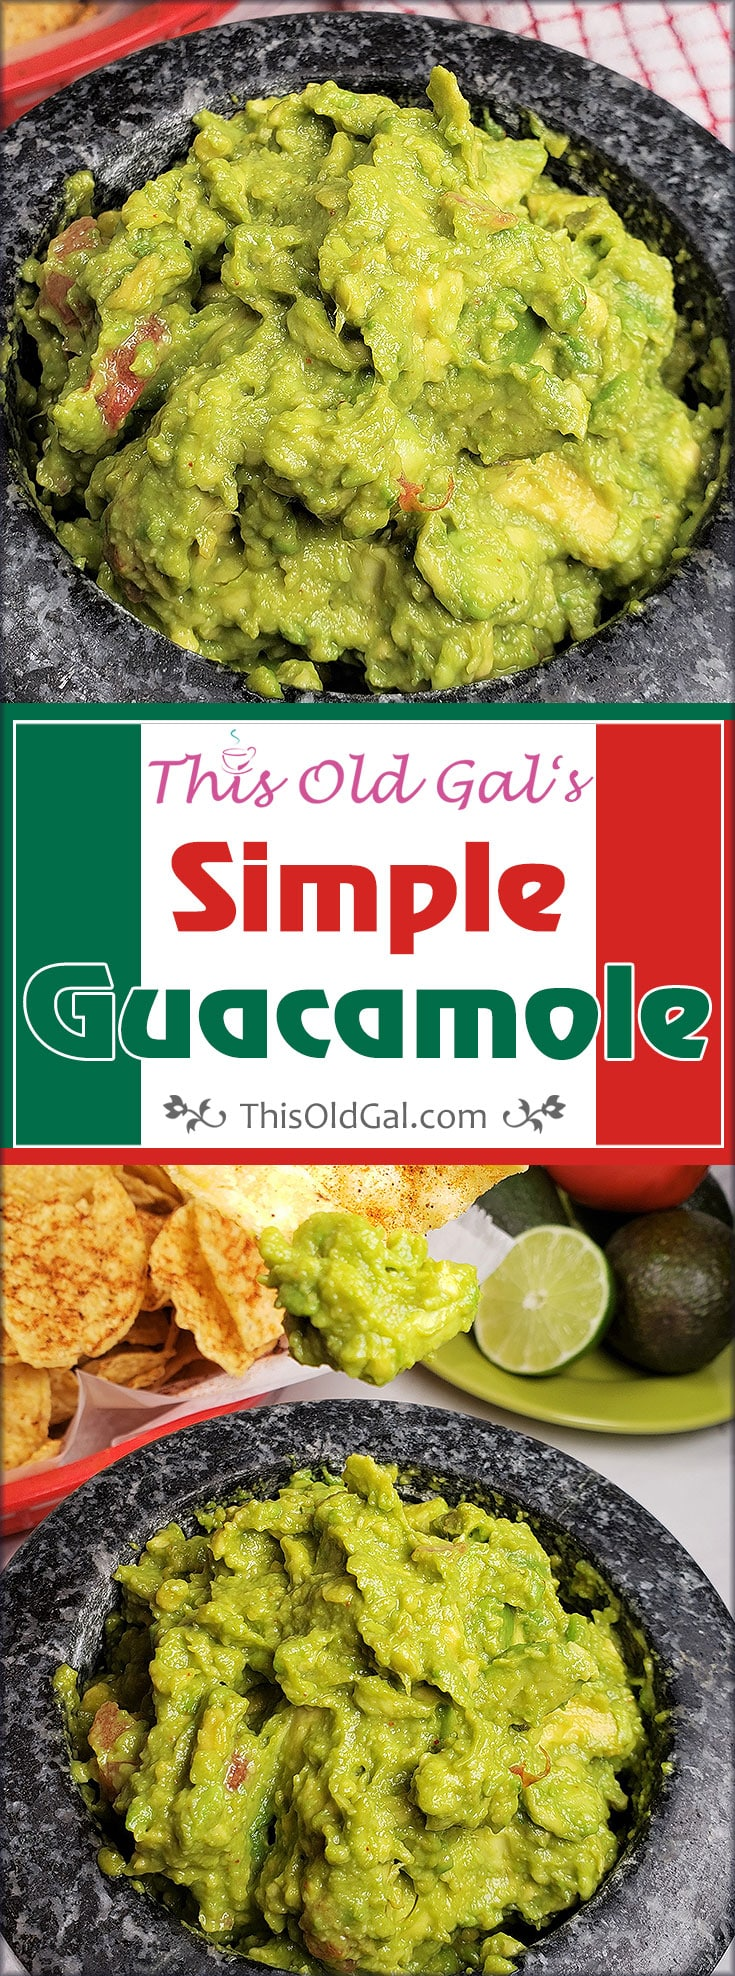 This Old Gal's Simple 5 minute Guacamole Recipe